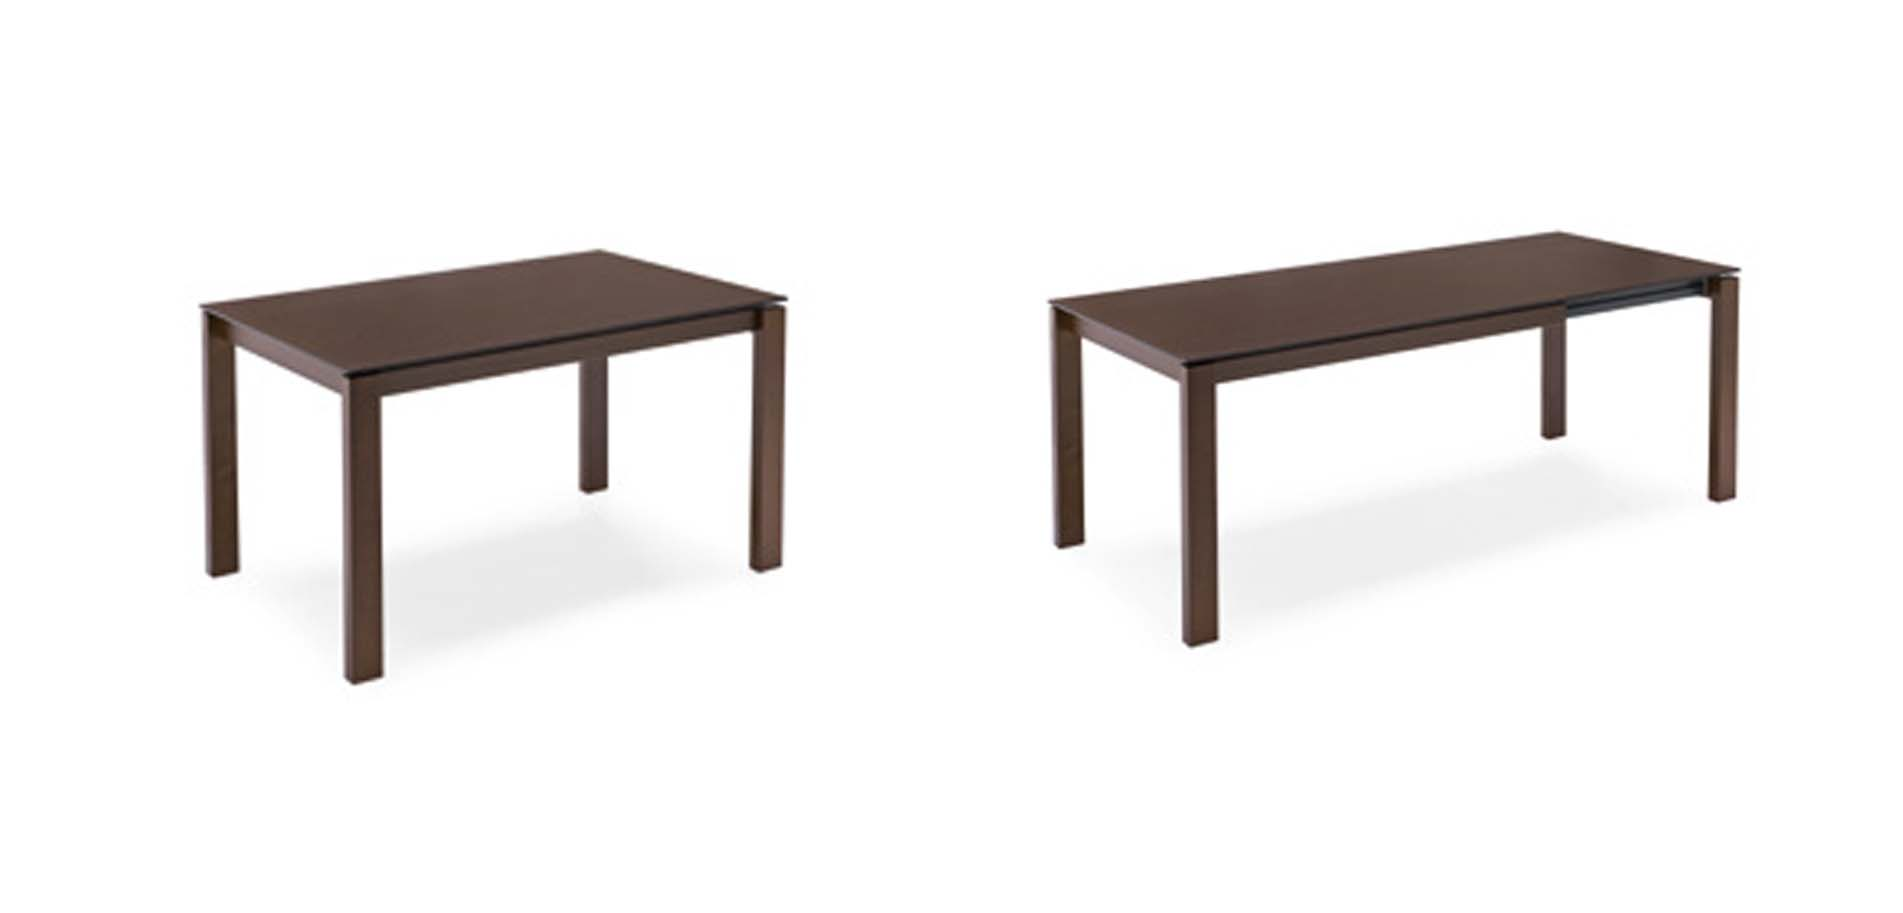 Baron Opening Table Of Connubia Calligaris Έ